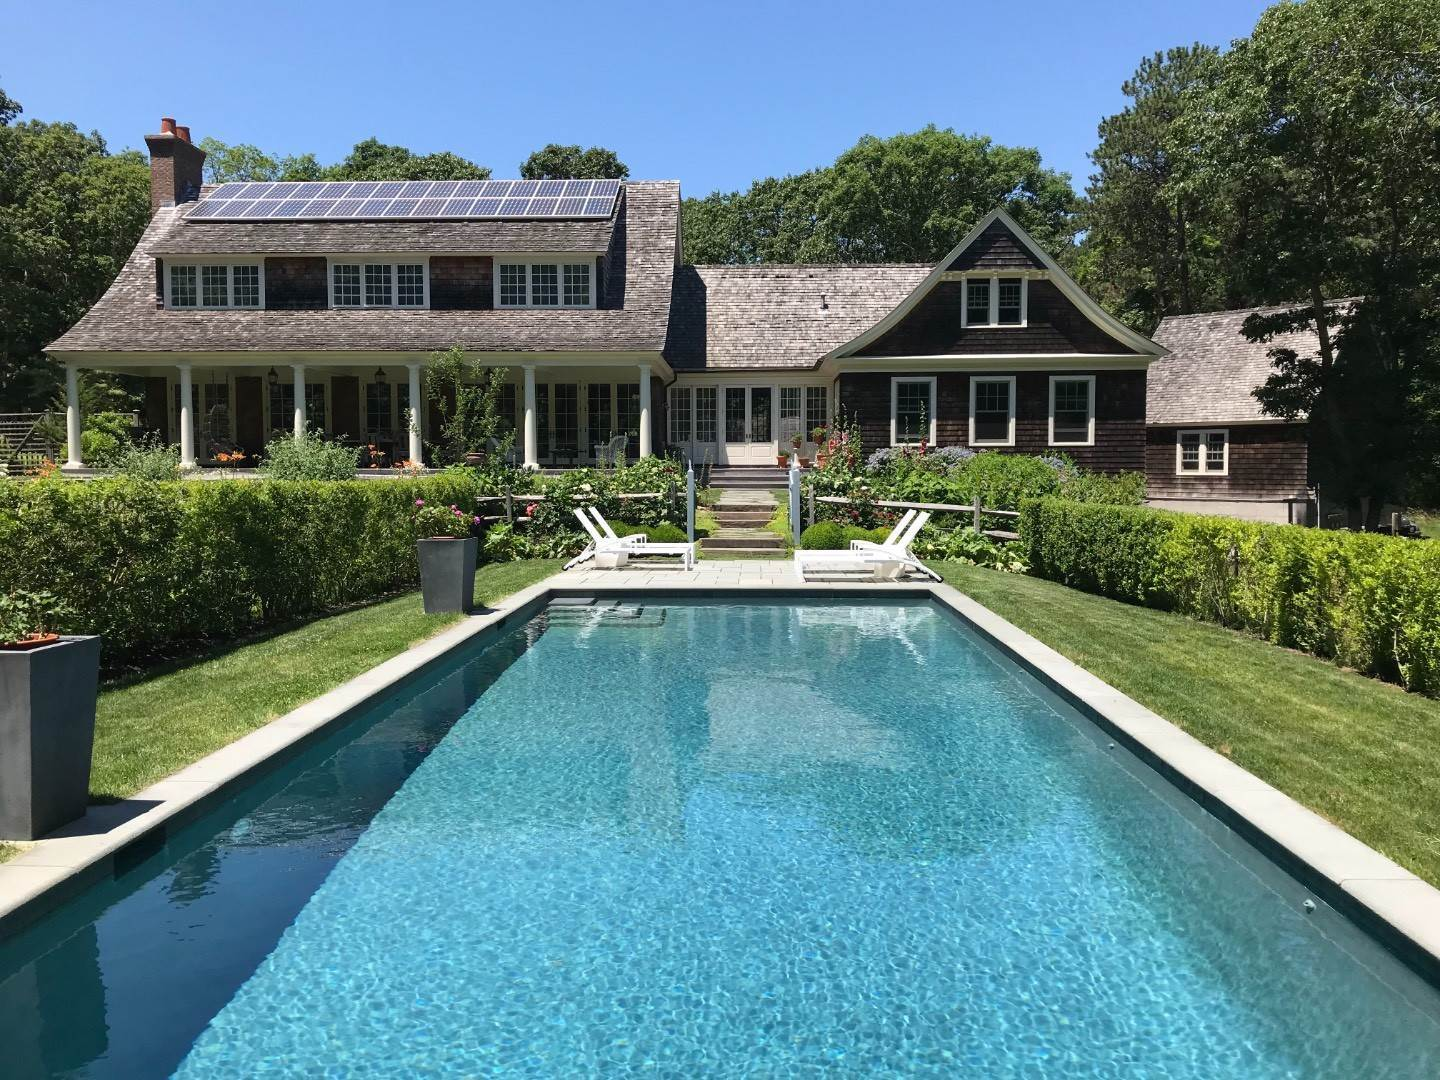 Single Family Home at Beautiful Private Four Bedroom Home With Pool And Gardens Amagansett, NY 11930